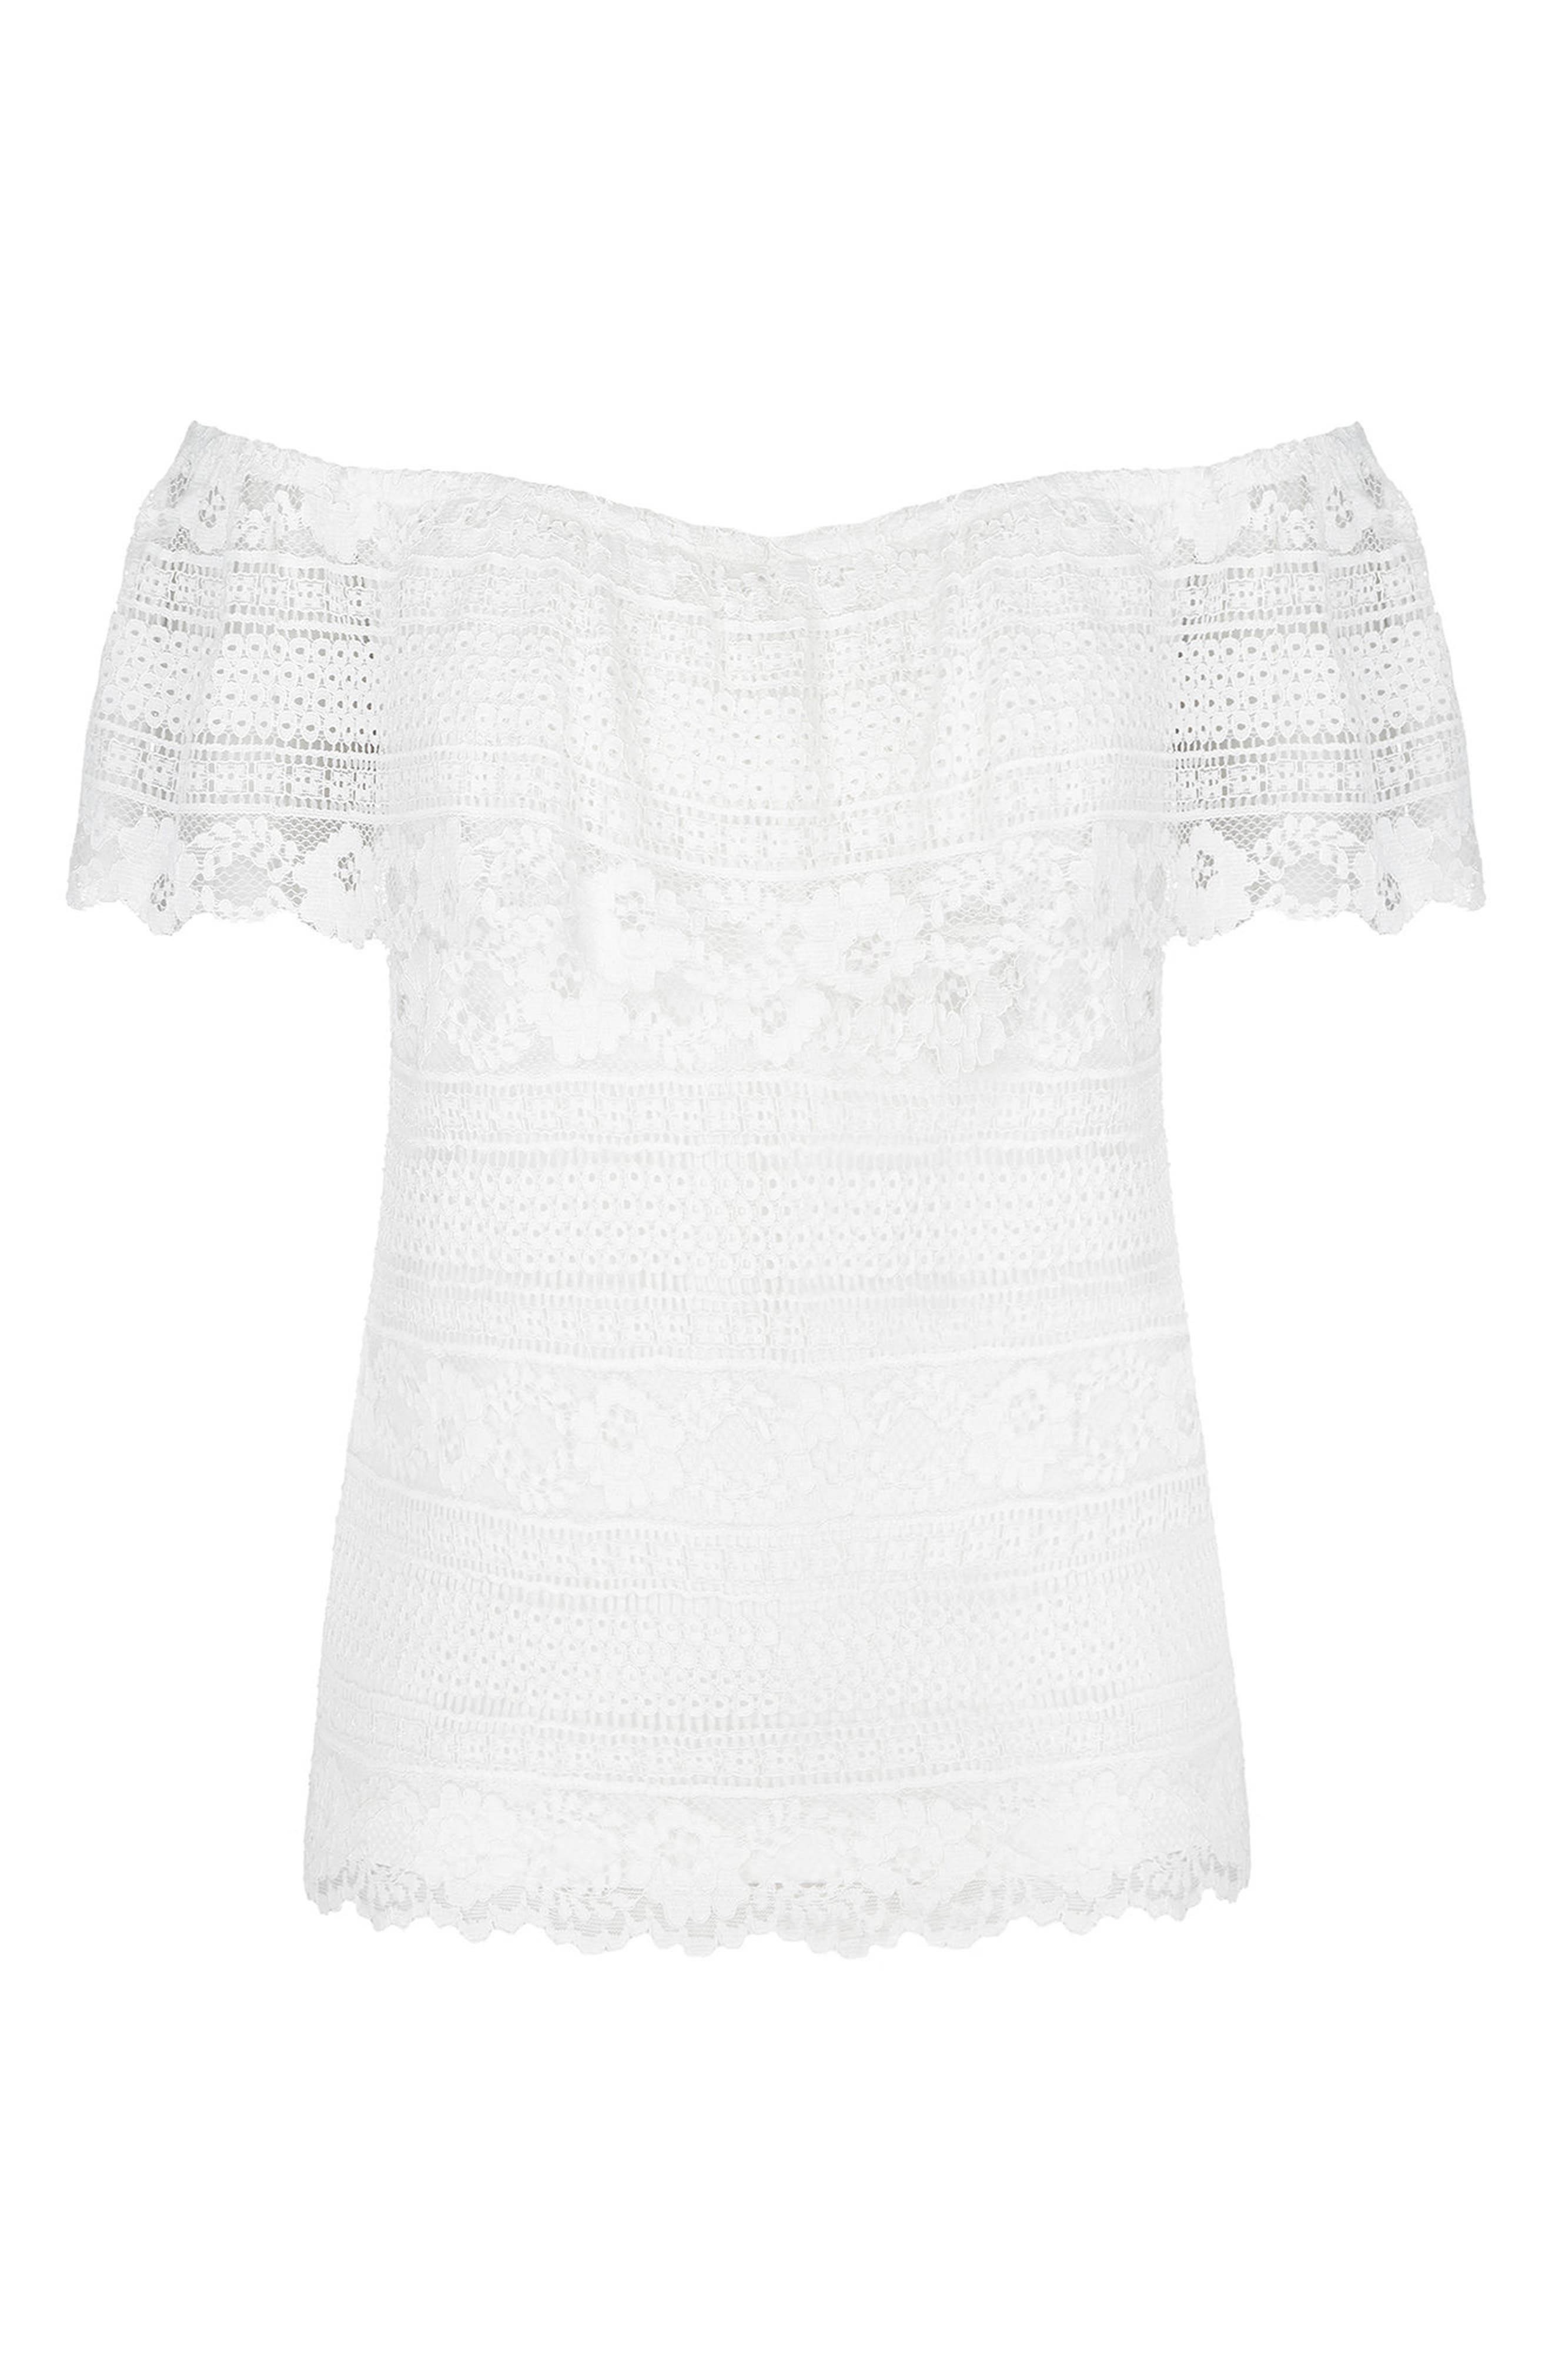 Summer Frill Lace Off the Shoulder Top,                             Alternate thumbnail 3, color,                             Ivory